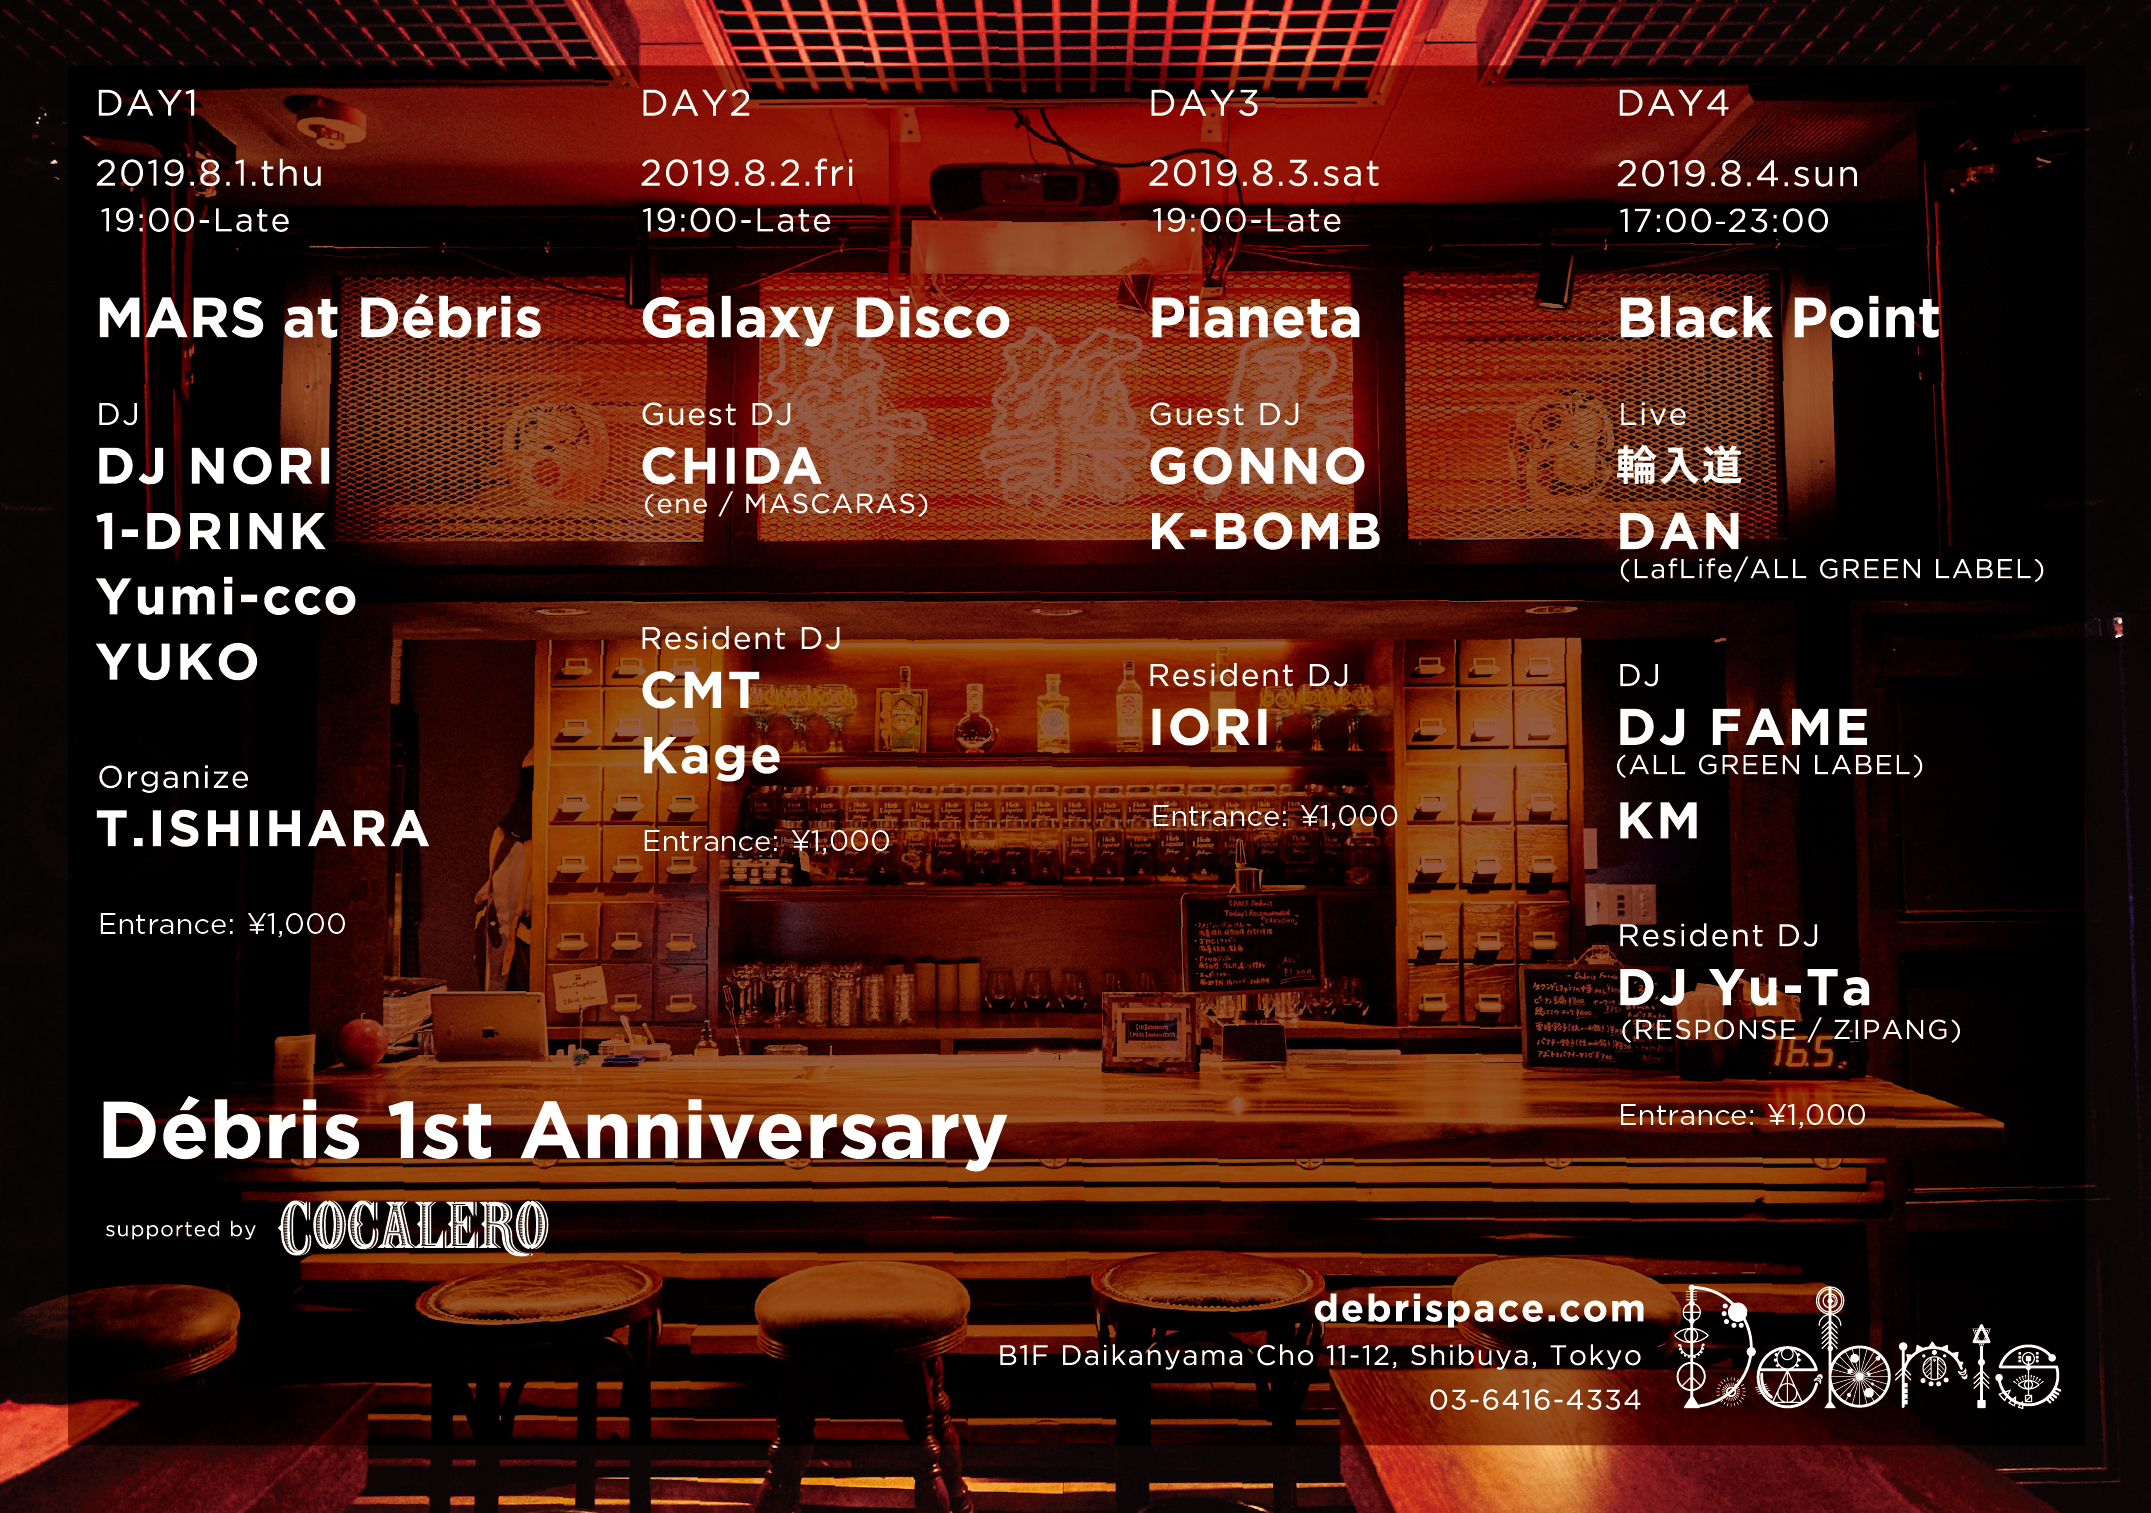 Pianeta〜Débris 1st Annversary DAY3〜supported by Cocalero